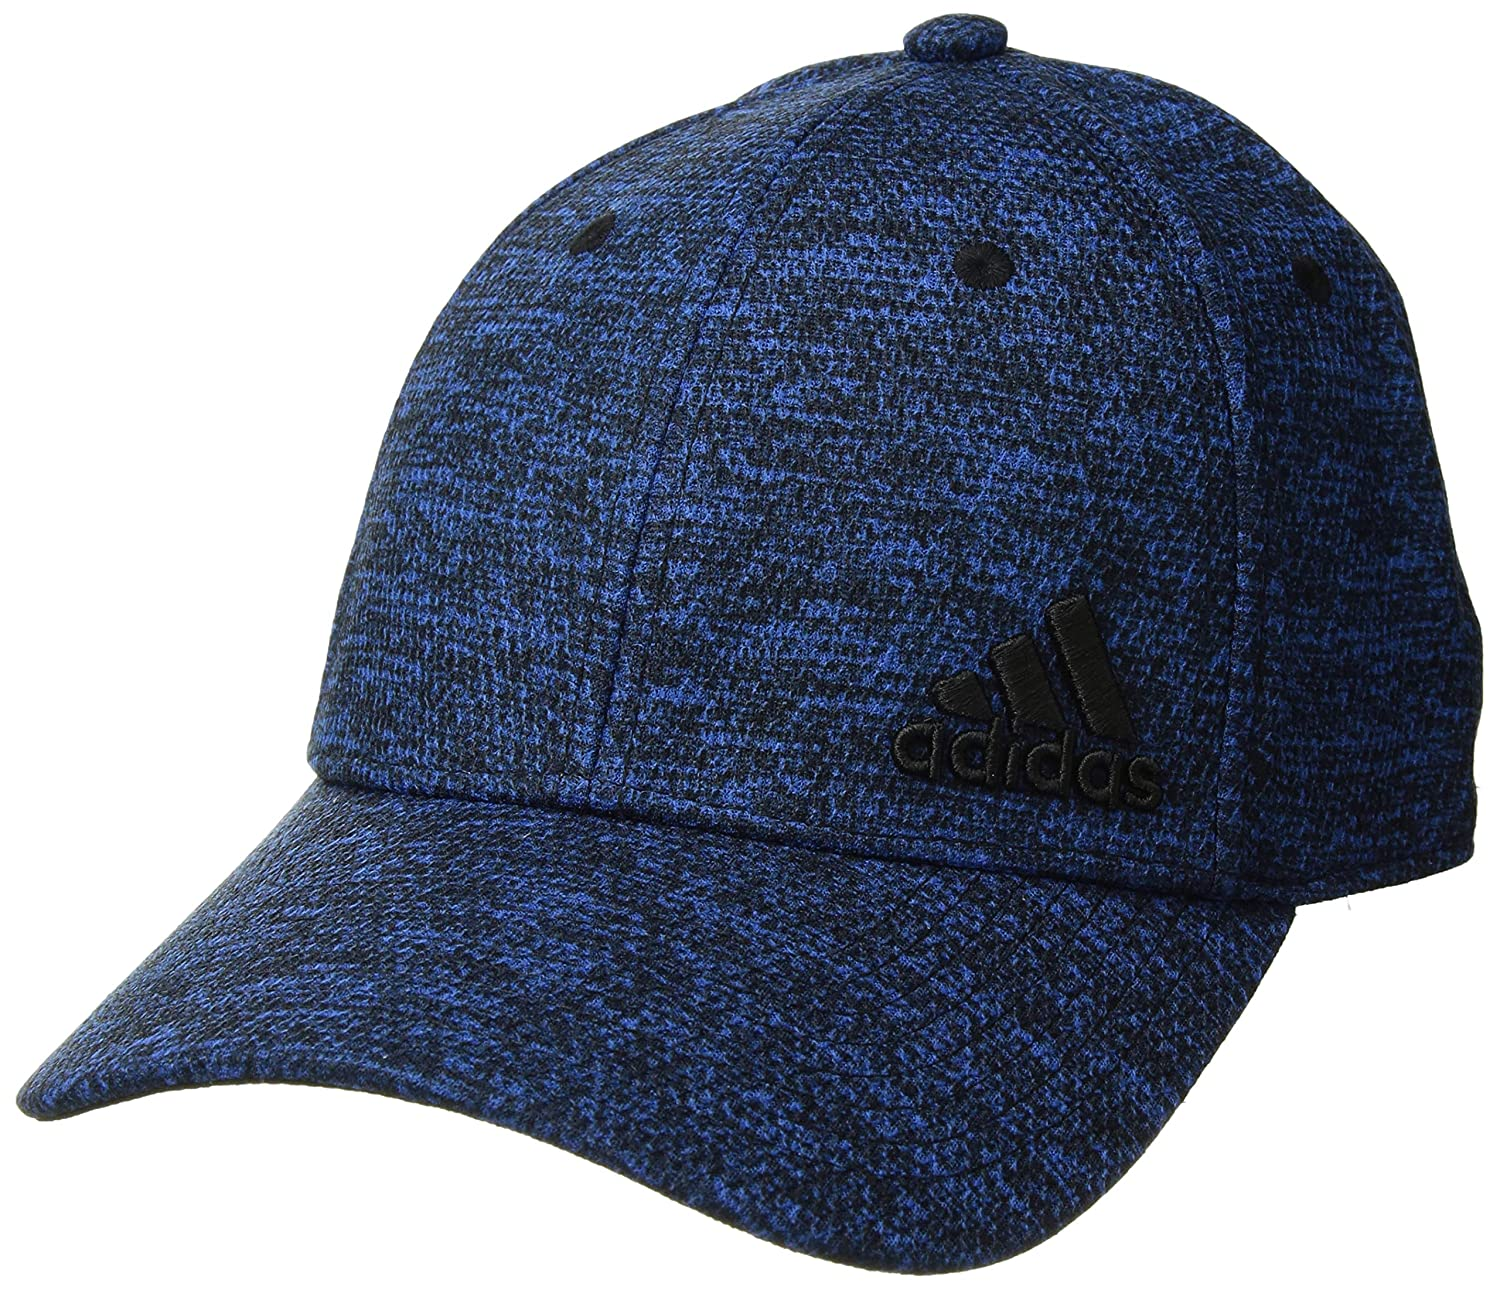 a5090bd2f70 Amazon.com  adidas Men s Release Stretch Fit Cap  Sports   Outdoors